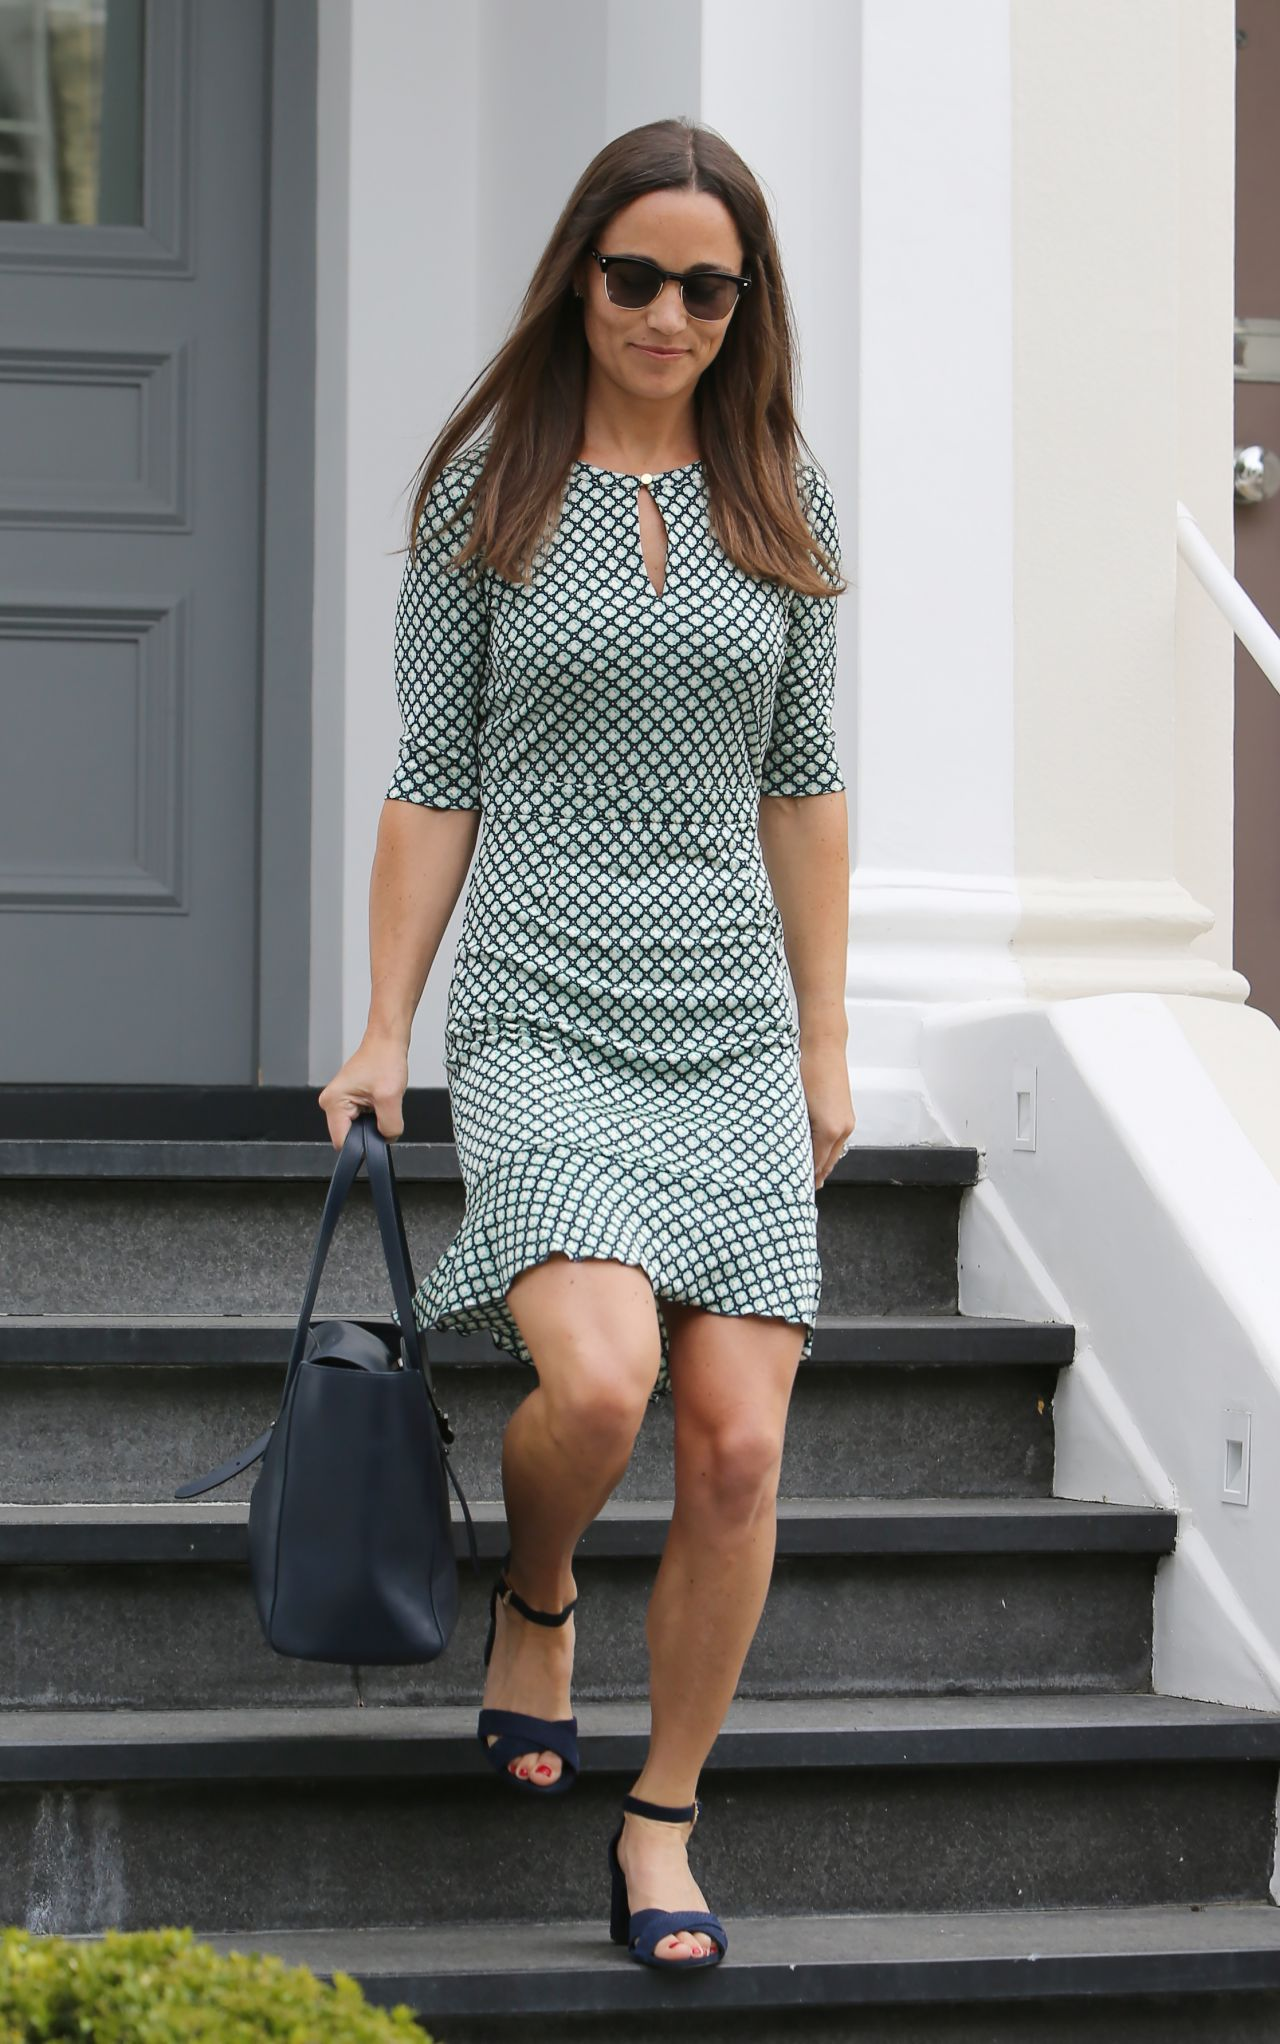 Pippa middleton style leaving her home in london 7 21 2016 for Middleton home